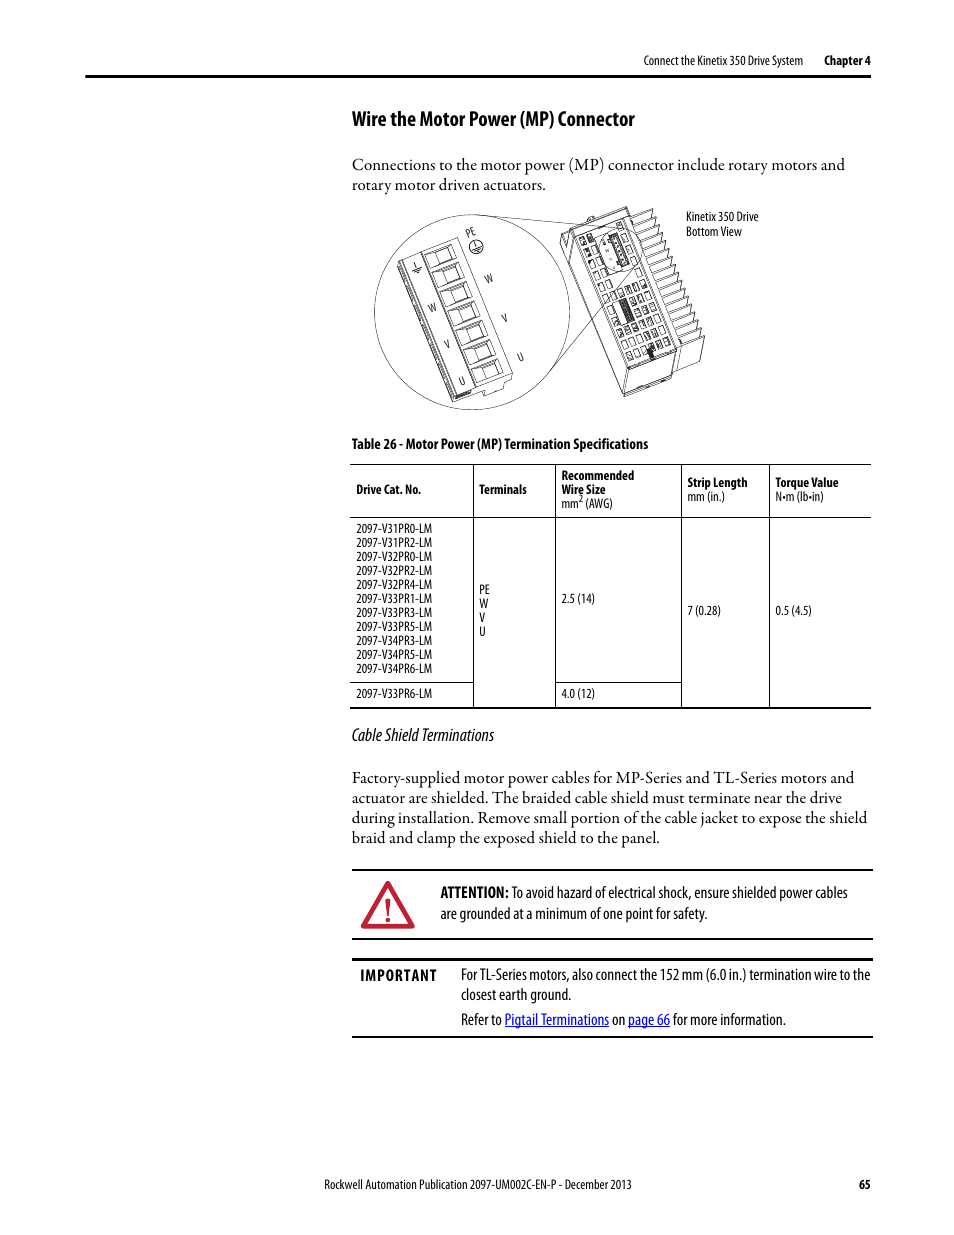 Wire The Motor Power Mp Connector Cable Shield Terminations Shielded Cord Wiring Diagram Rockwell Automation 2097